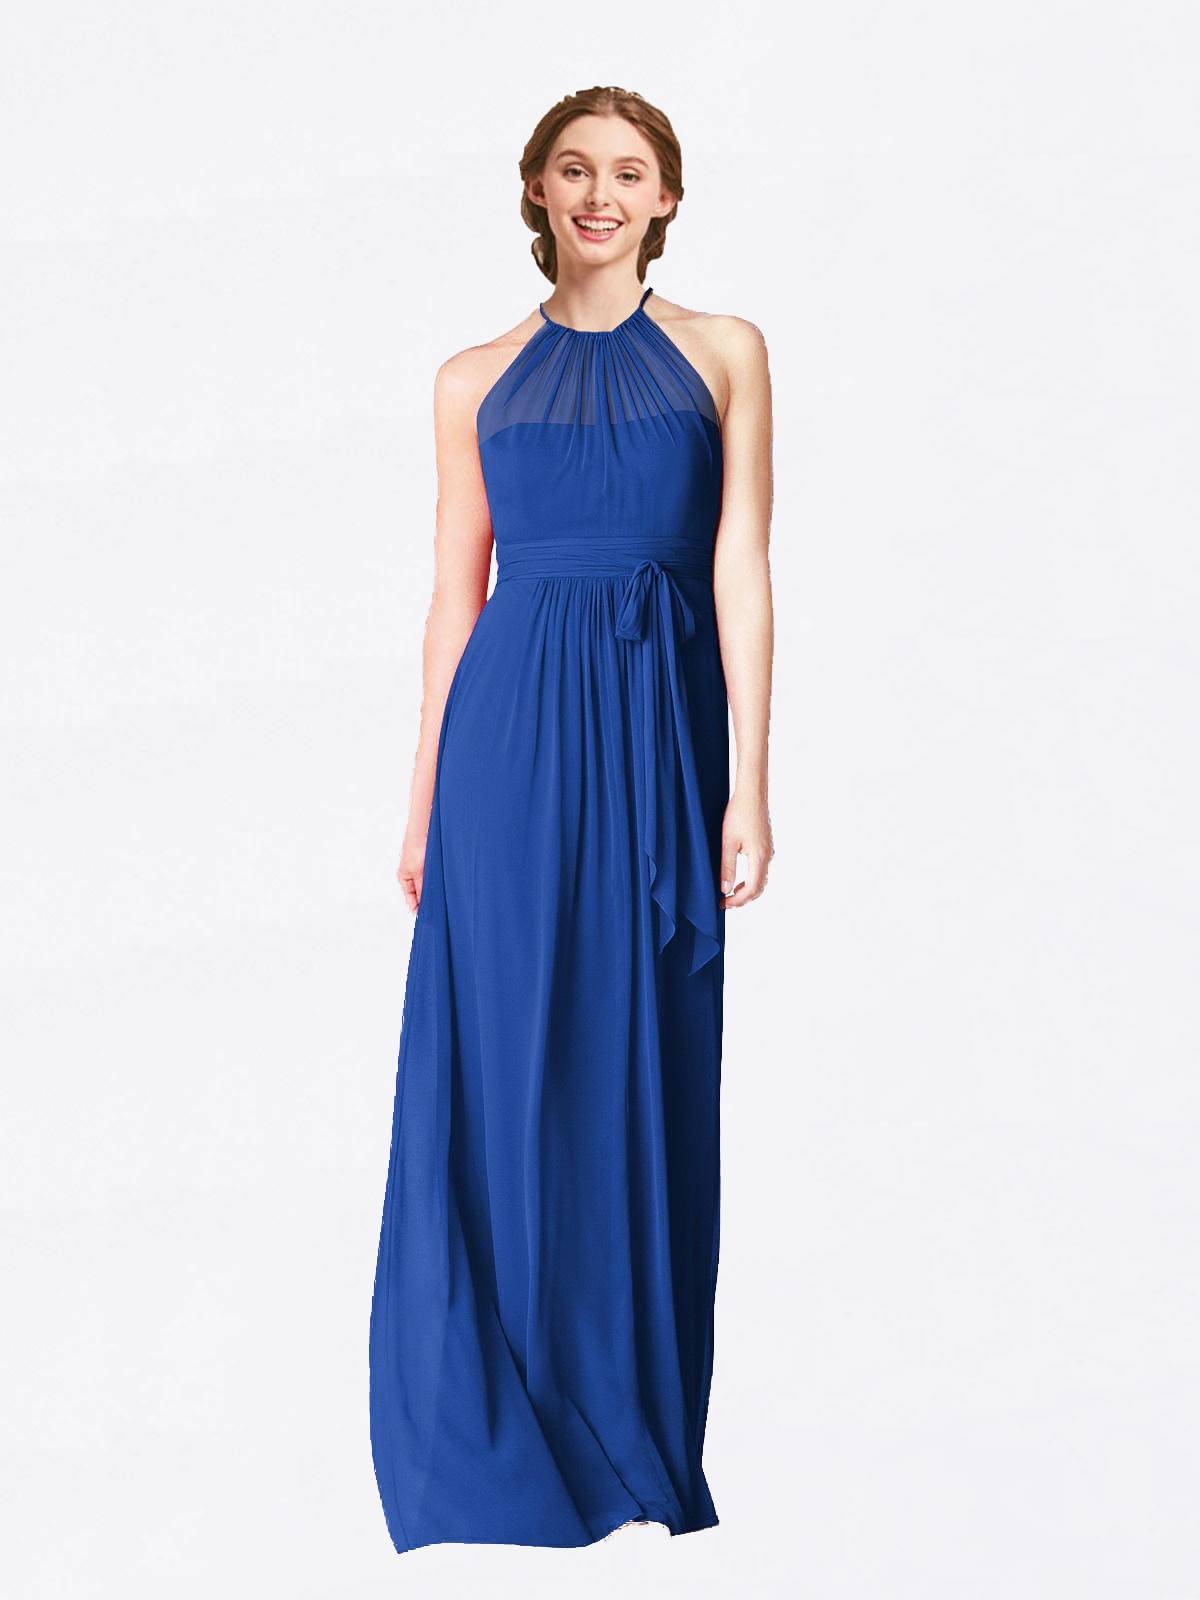 Long A-Line Halter Sleeveless Royal Blue Chiffon Bridesmaid Dress Laura